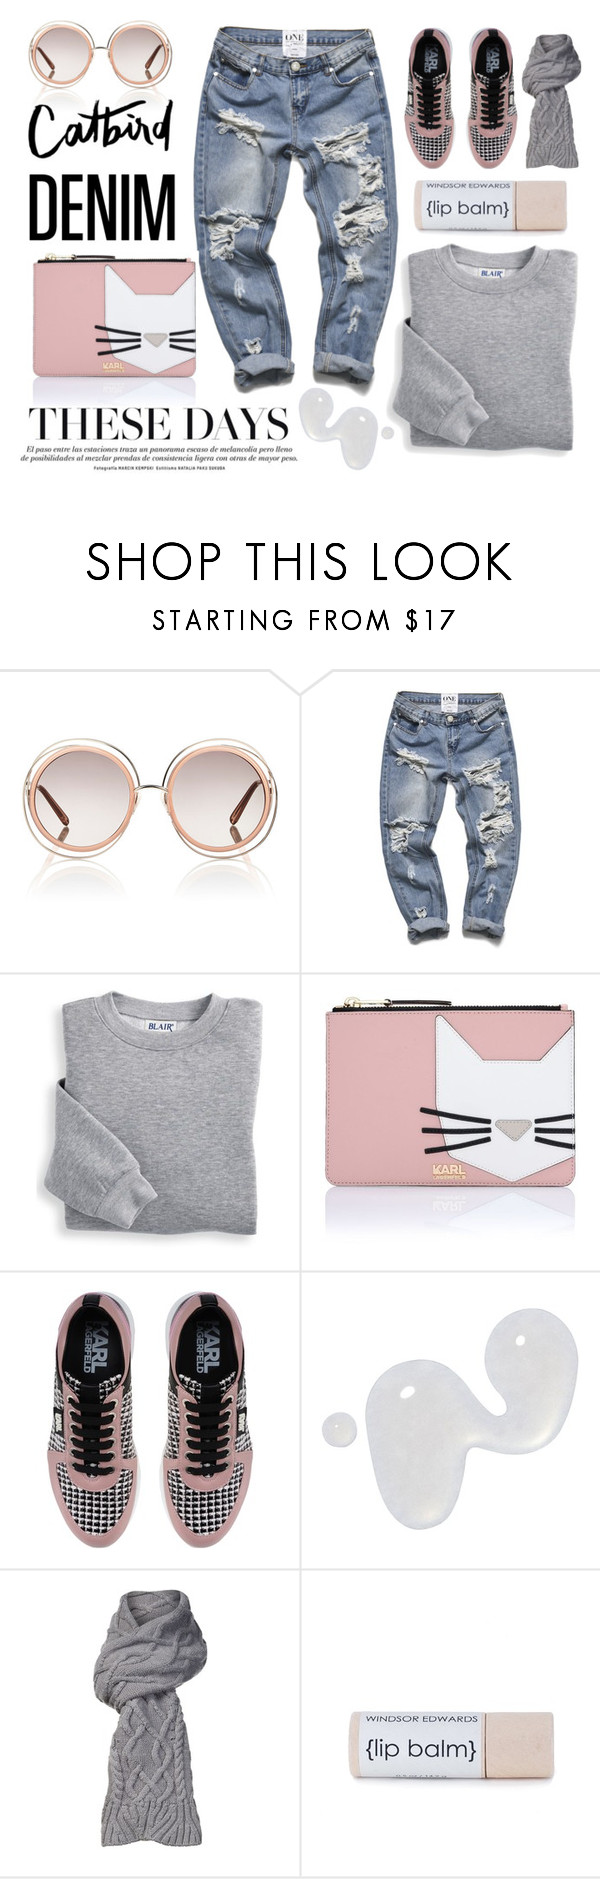 """""""Distressed Denim"""" by bysc ❤ liked on Polyvore featuring Chloé, Blair, Karl Lagerfeld, Illamasqua and UGG"""